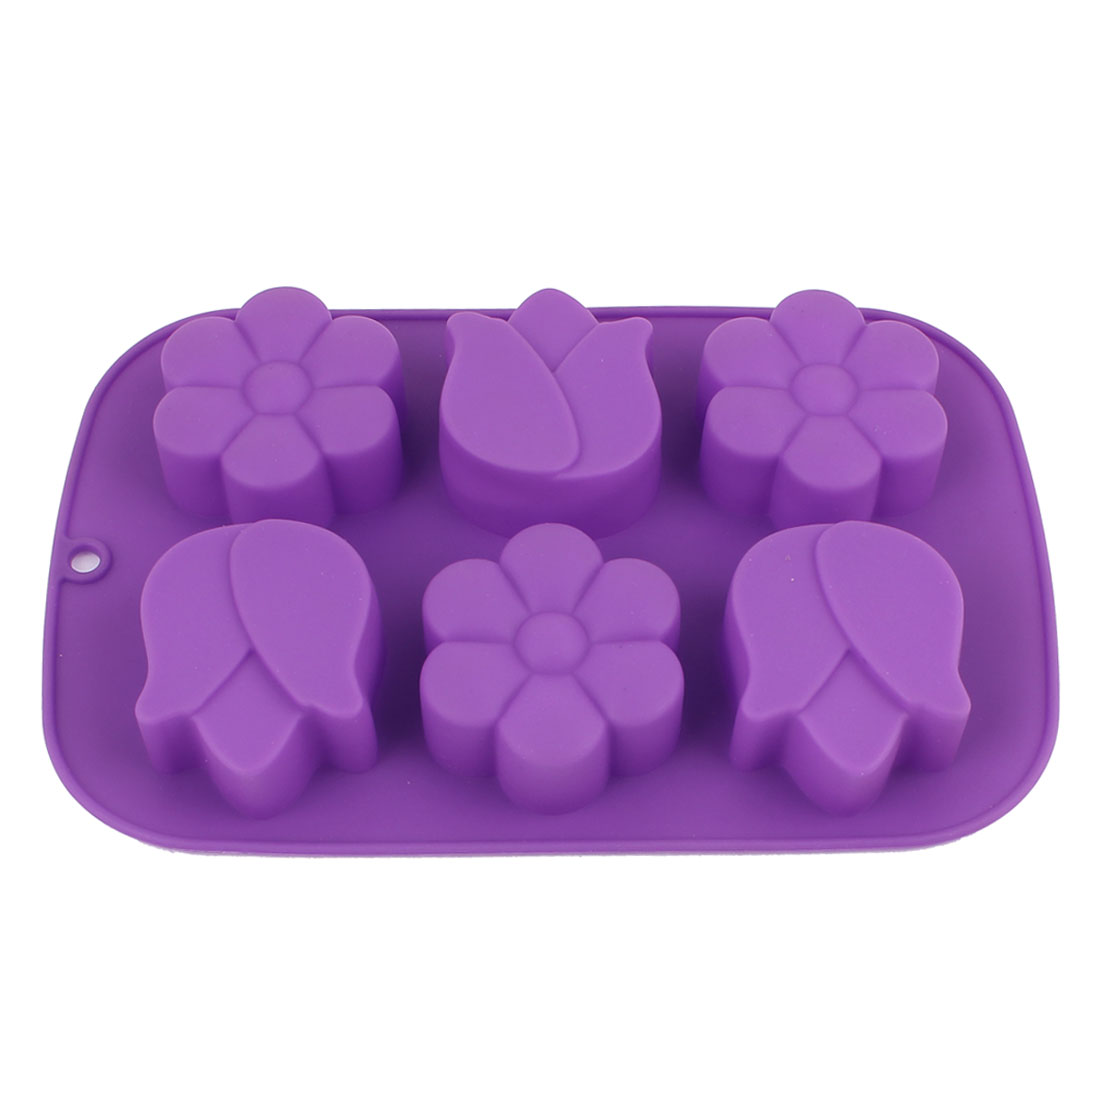 Silicone 6 Cavity Flowers Shaped DIY Cake Bread Baking Mold Purple